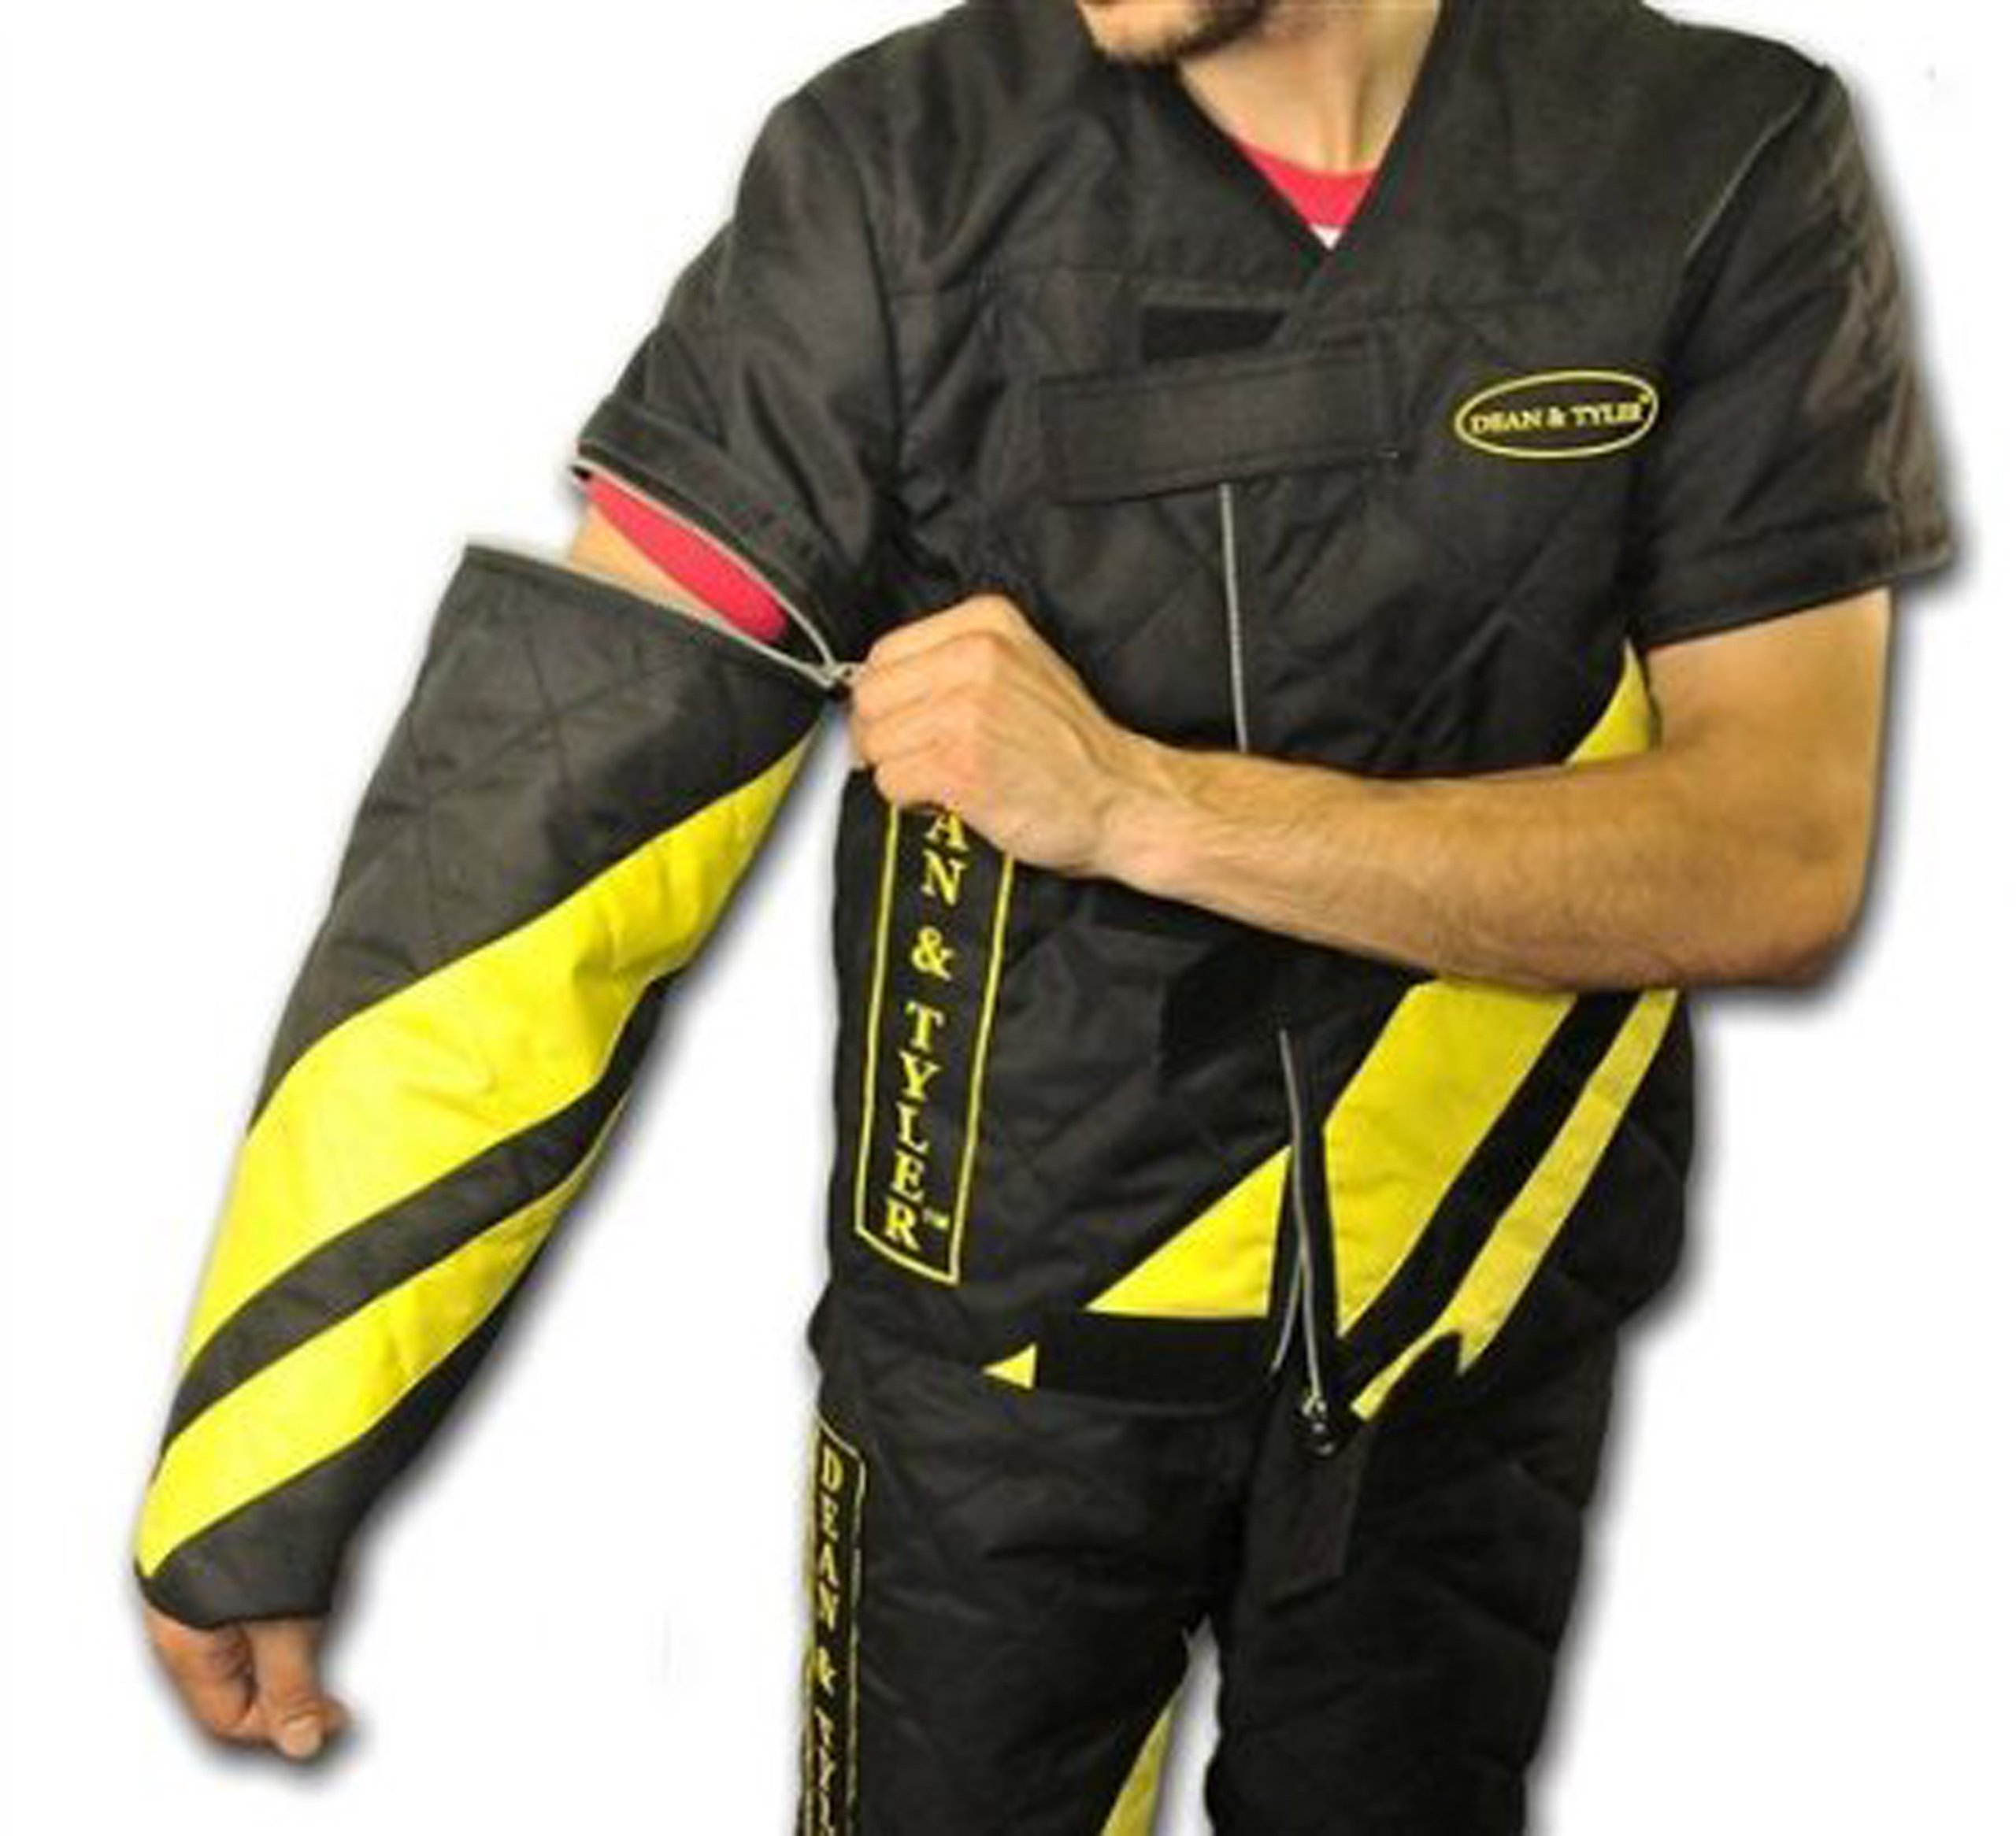 Dean and Tyler Scratch Suit, Neoprene Nylon - Black/Yellow - Size: Large (J: 42-Inch, P: 36-Inch) by Dean & Tyler (Image #5)